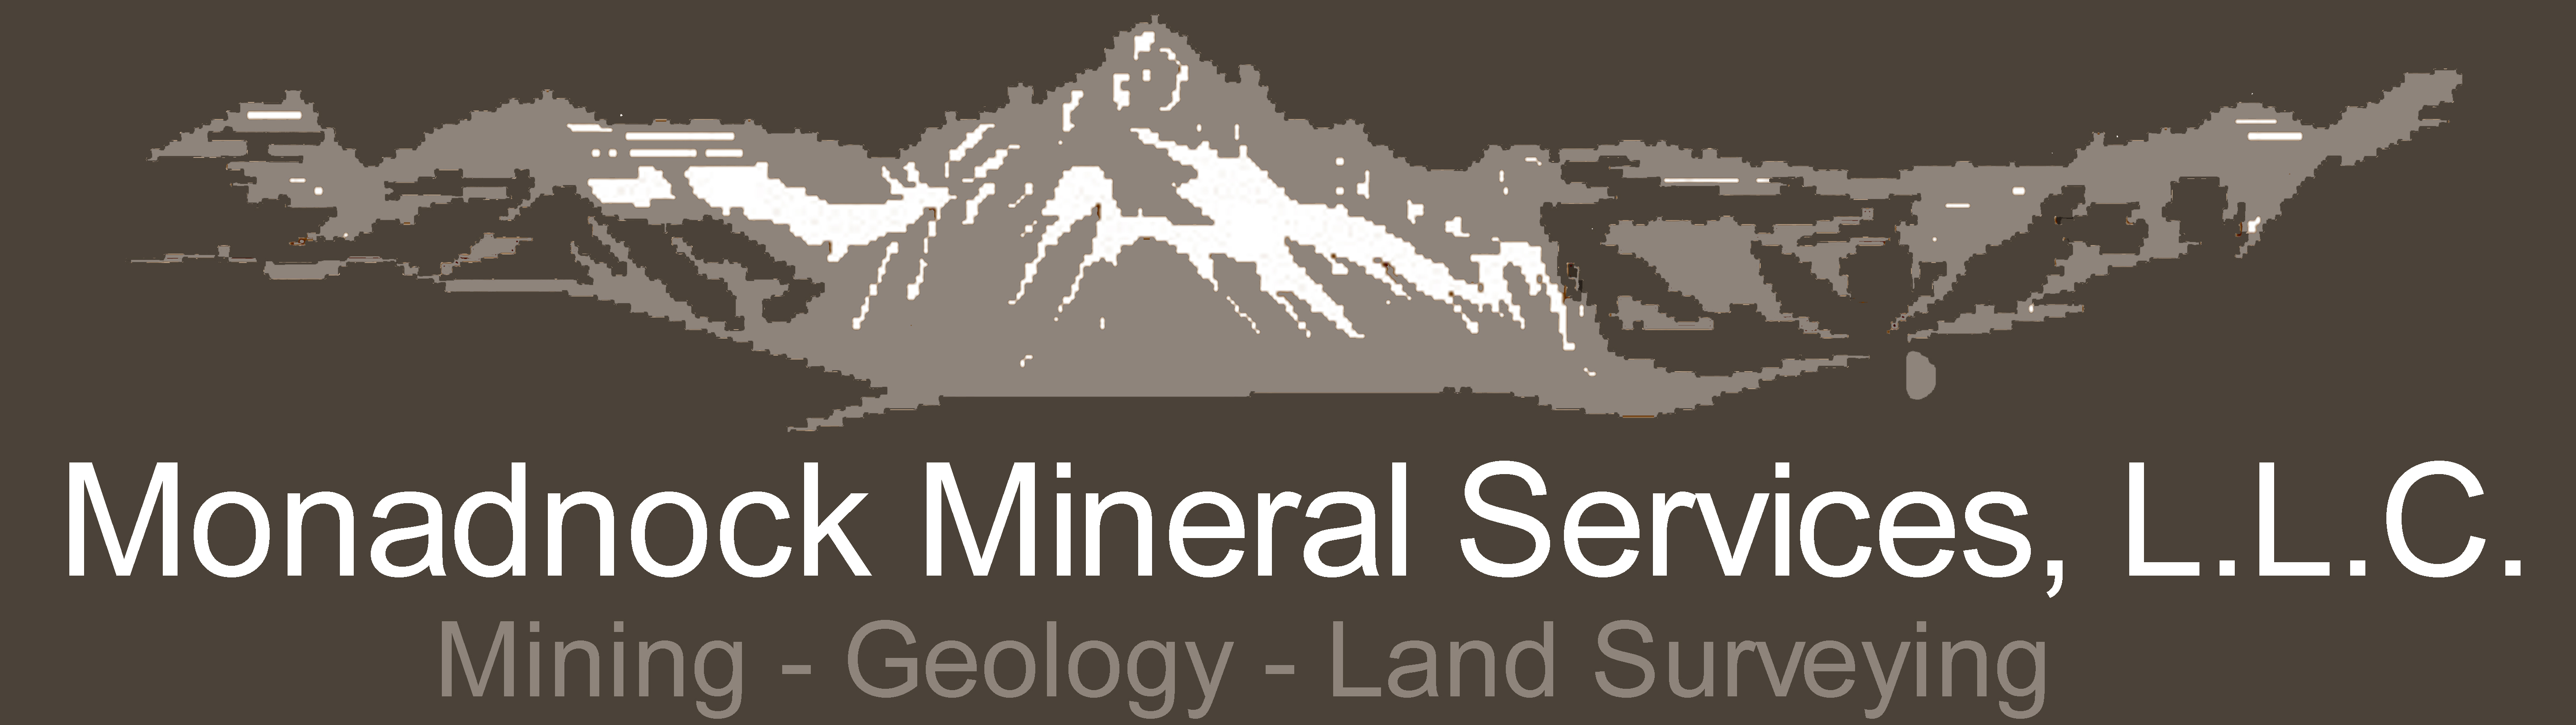 monadnock mineral services logo survey mining geology